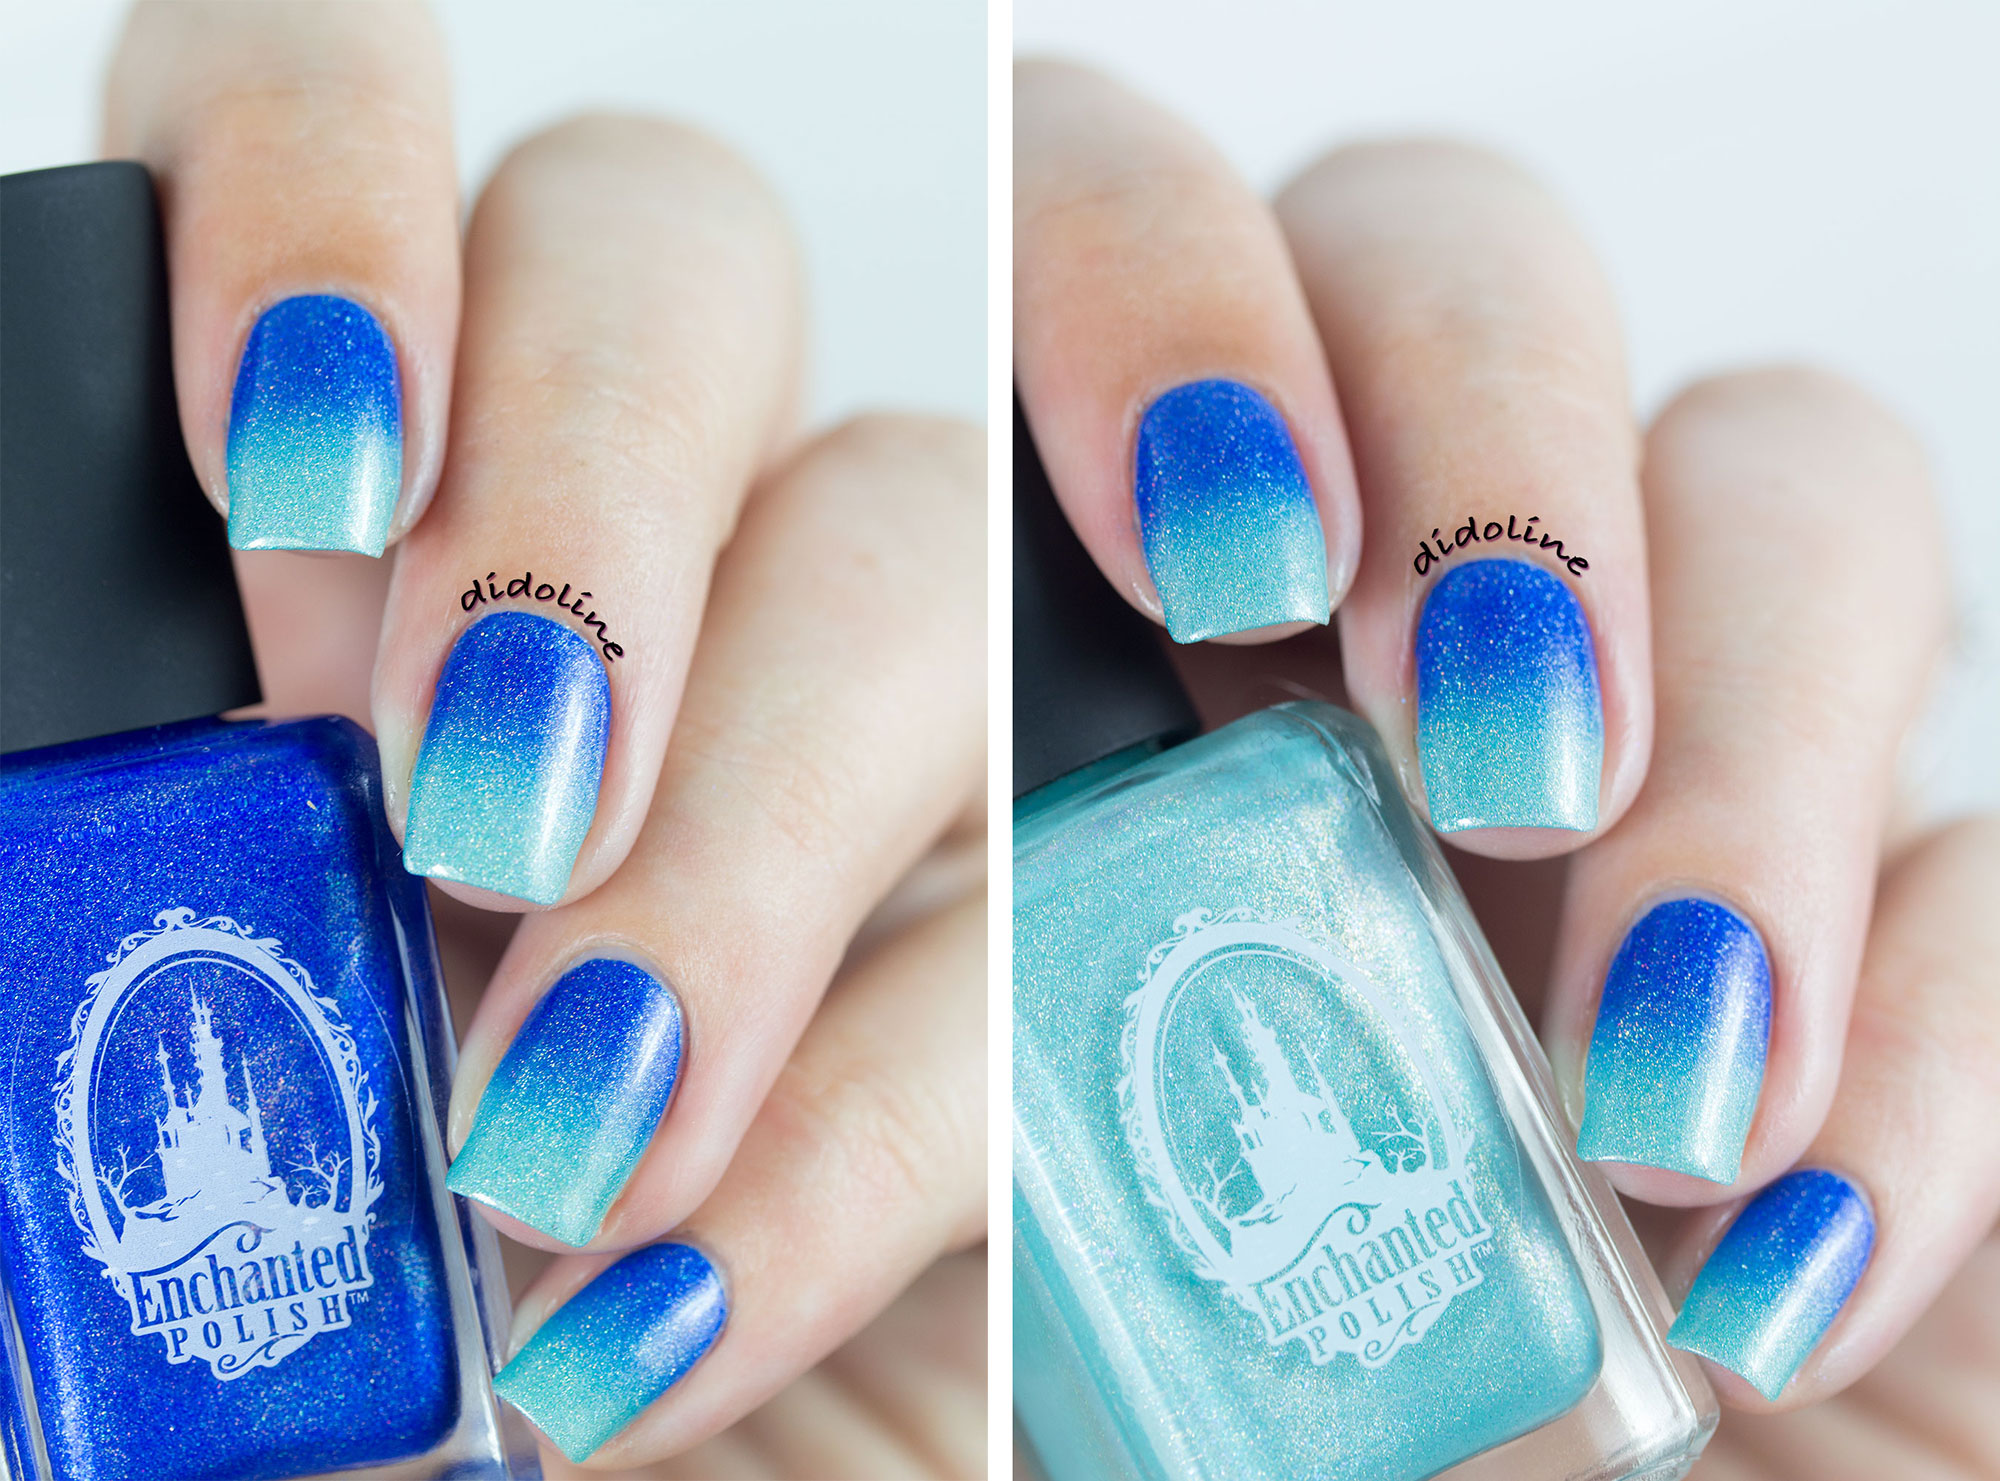 Enchanted Polish - Gradient Nails with May 2015 and Daydream